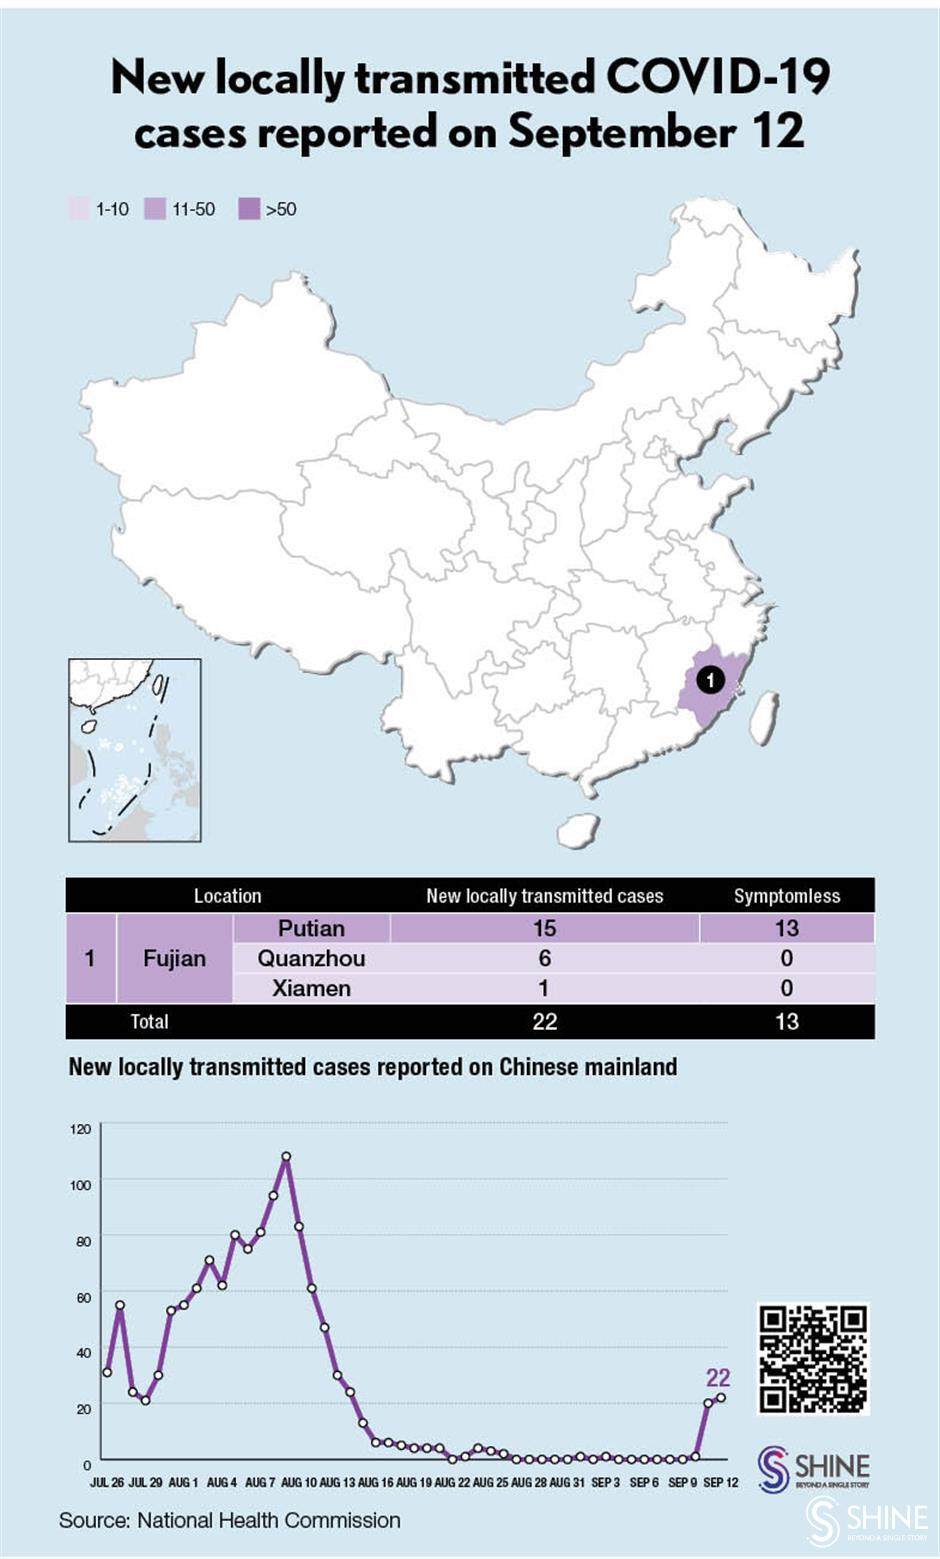 Chinese mainland reports 22 new locally transmitted COVID-19 cases